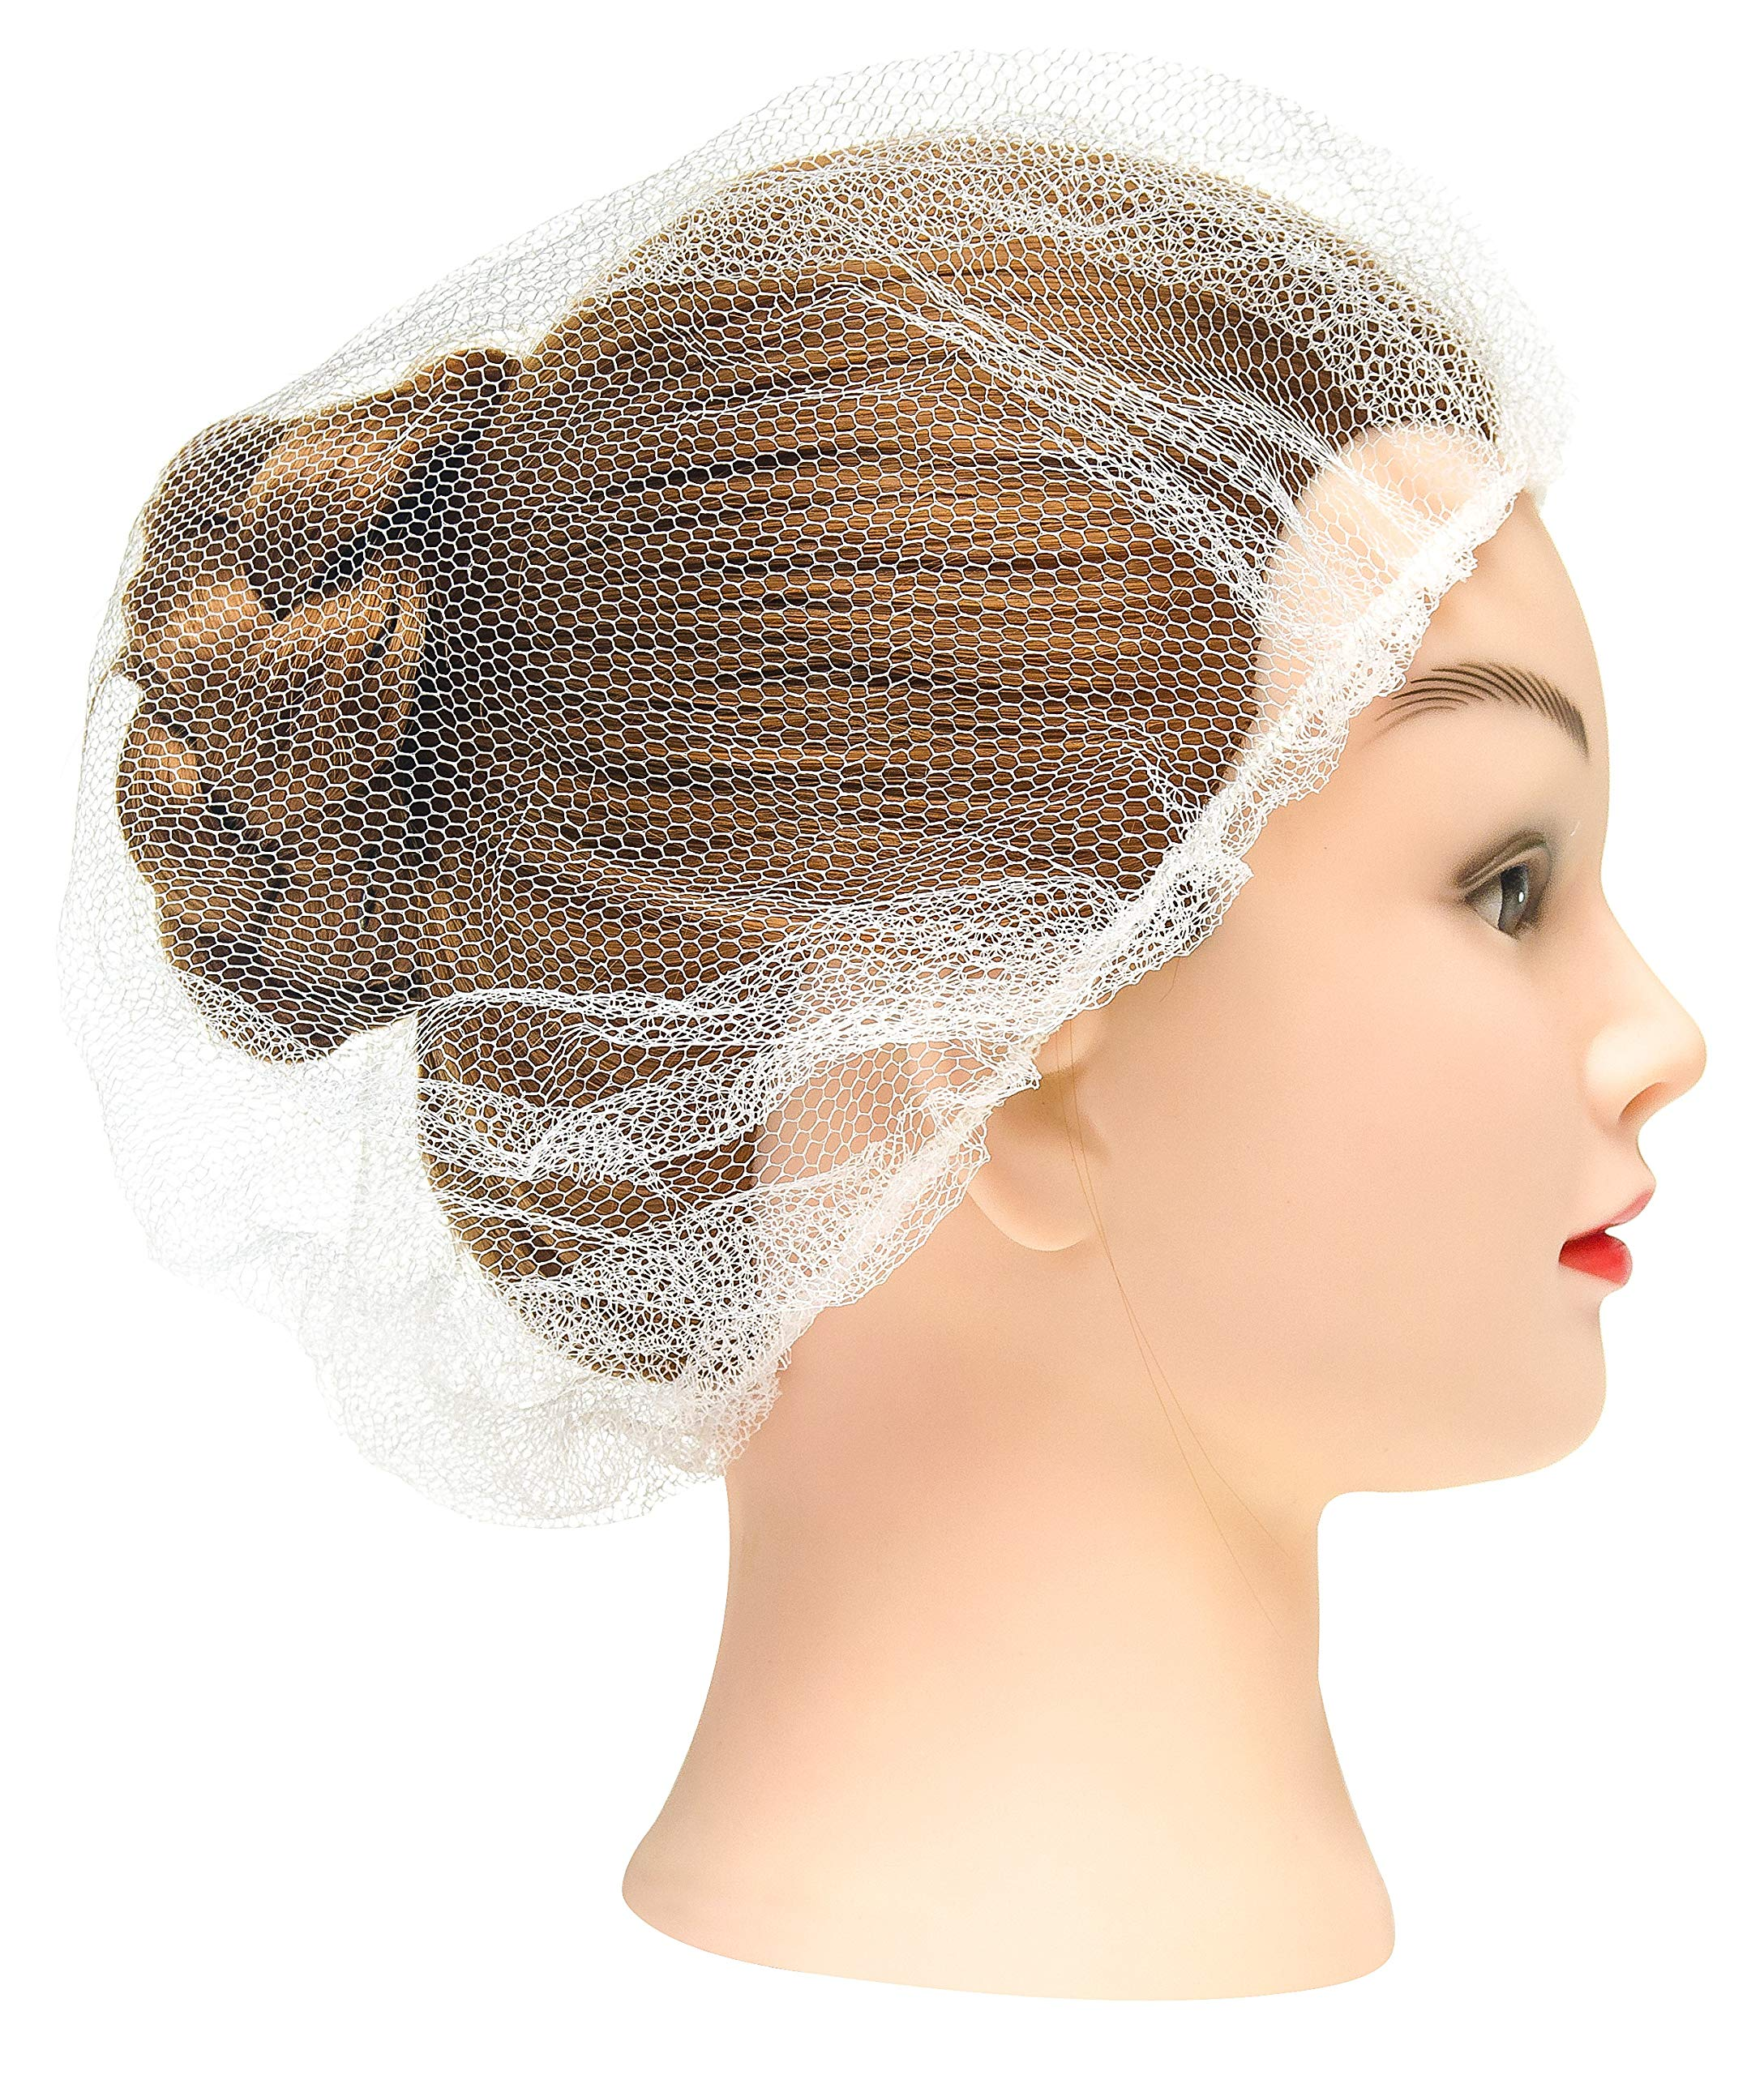 """100 Pack White Nylon Hairnets 24"""" Size. Disposable white hairnets. Protective Hair Nets with Elastic Edge Mesh. Stretchable Hairnet Caps for Non-Medical Use. Lightweight, Breathable. Wholesale price."""